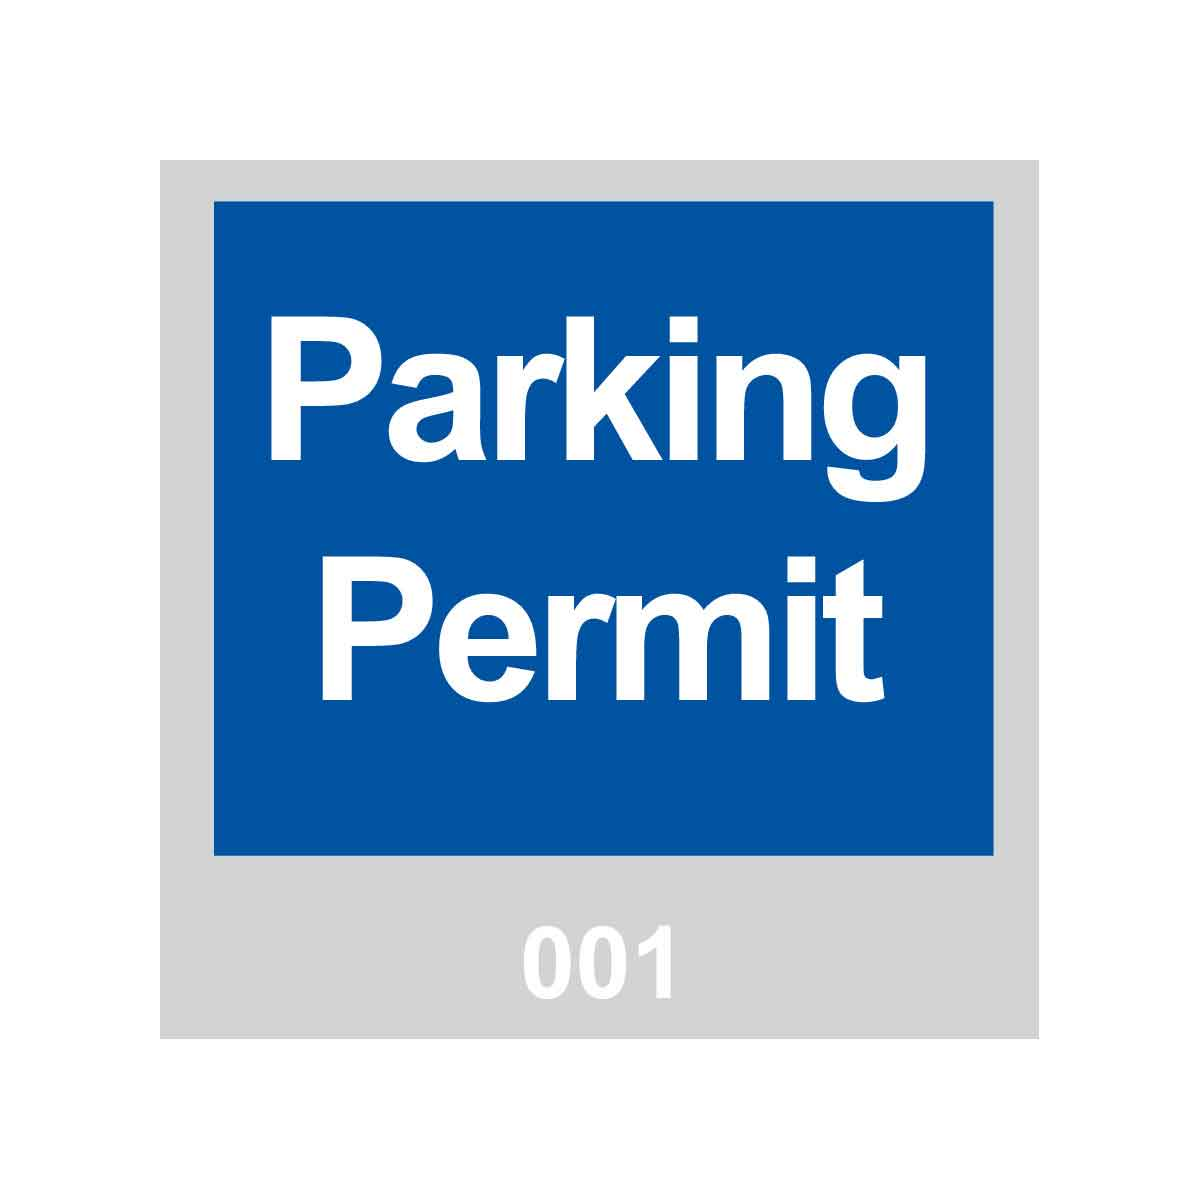 Pack of 100 3 W x 3 H 3 W x 3 H Brady 96236 Vinyl Windshield Decal Pack of 100 301-400 Sequence Brady Worldwide Inc Parking Permit Red